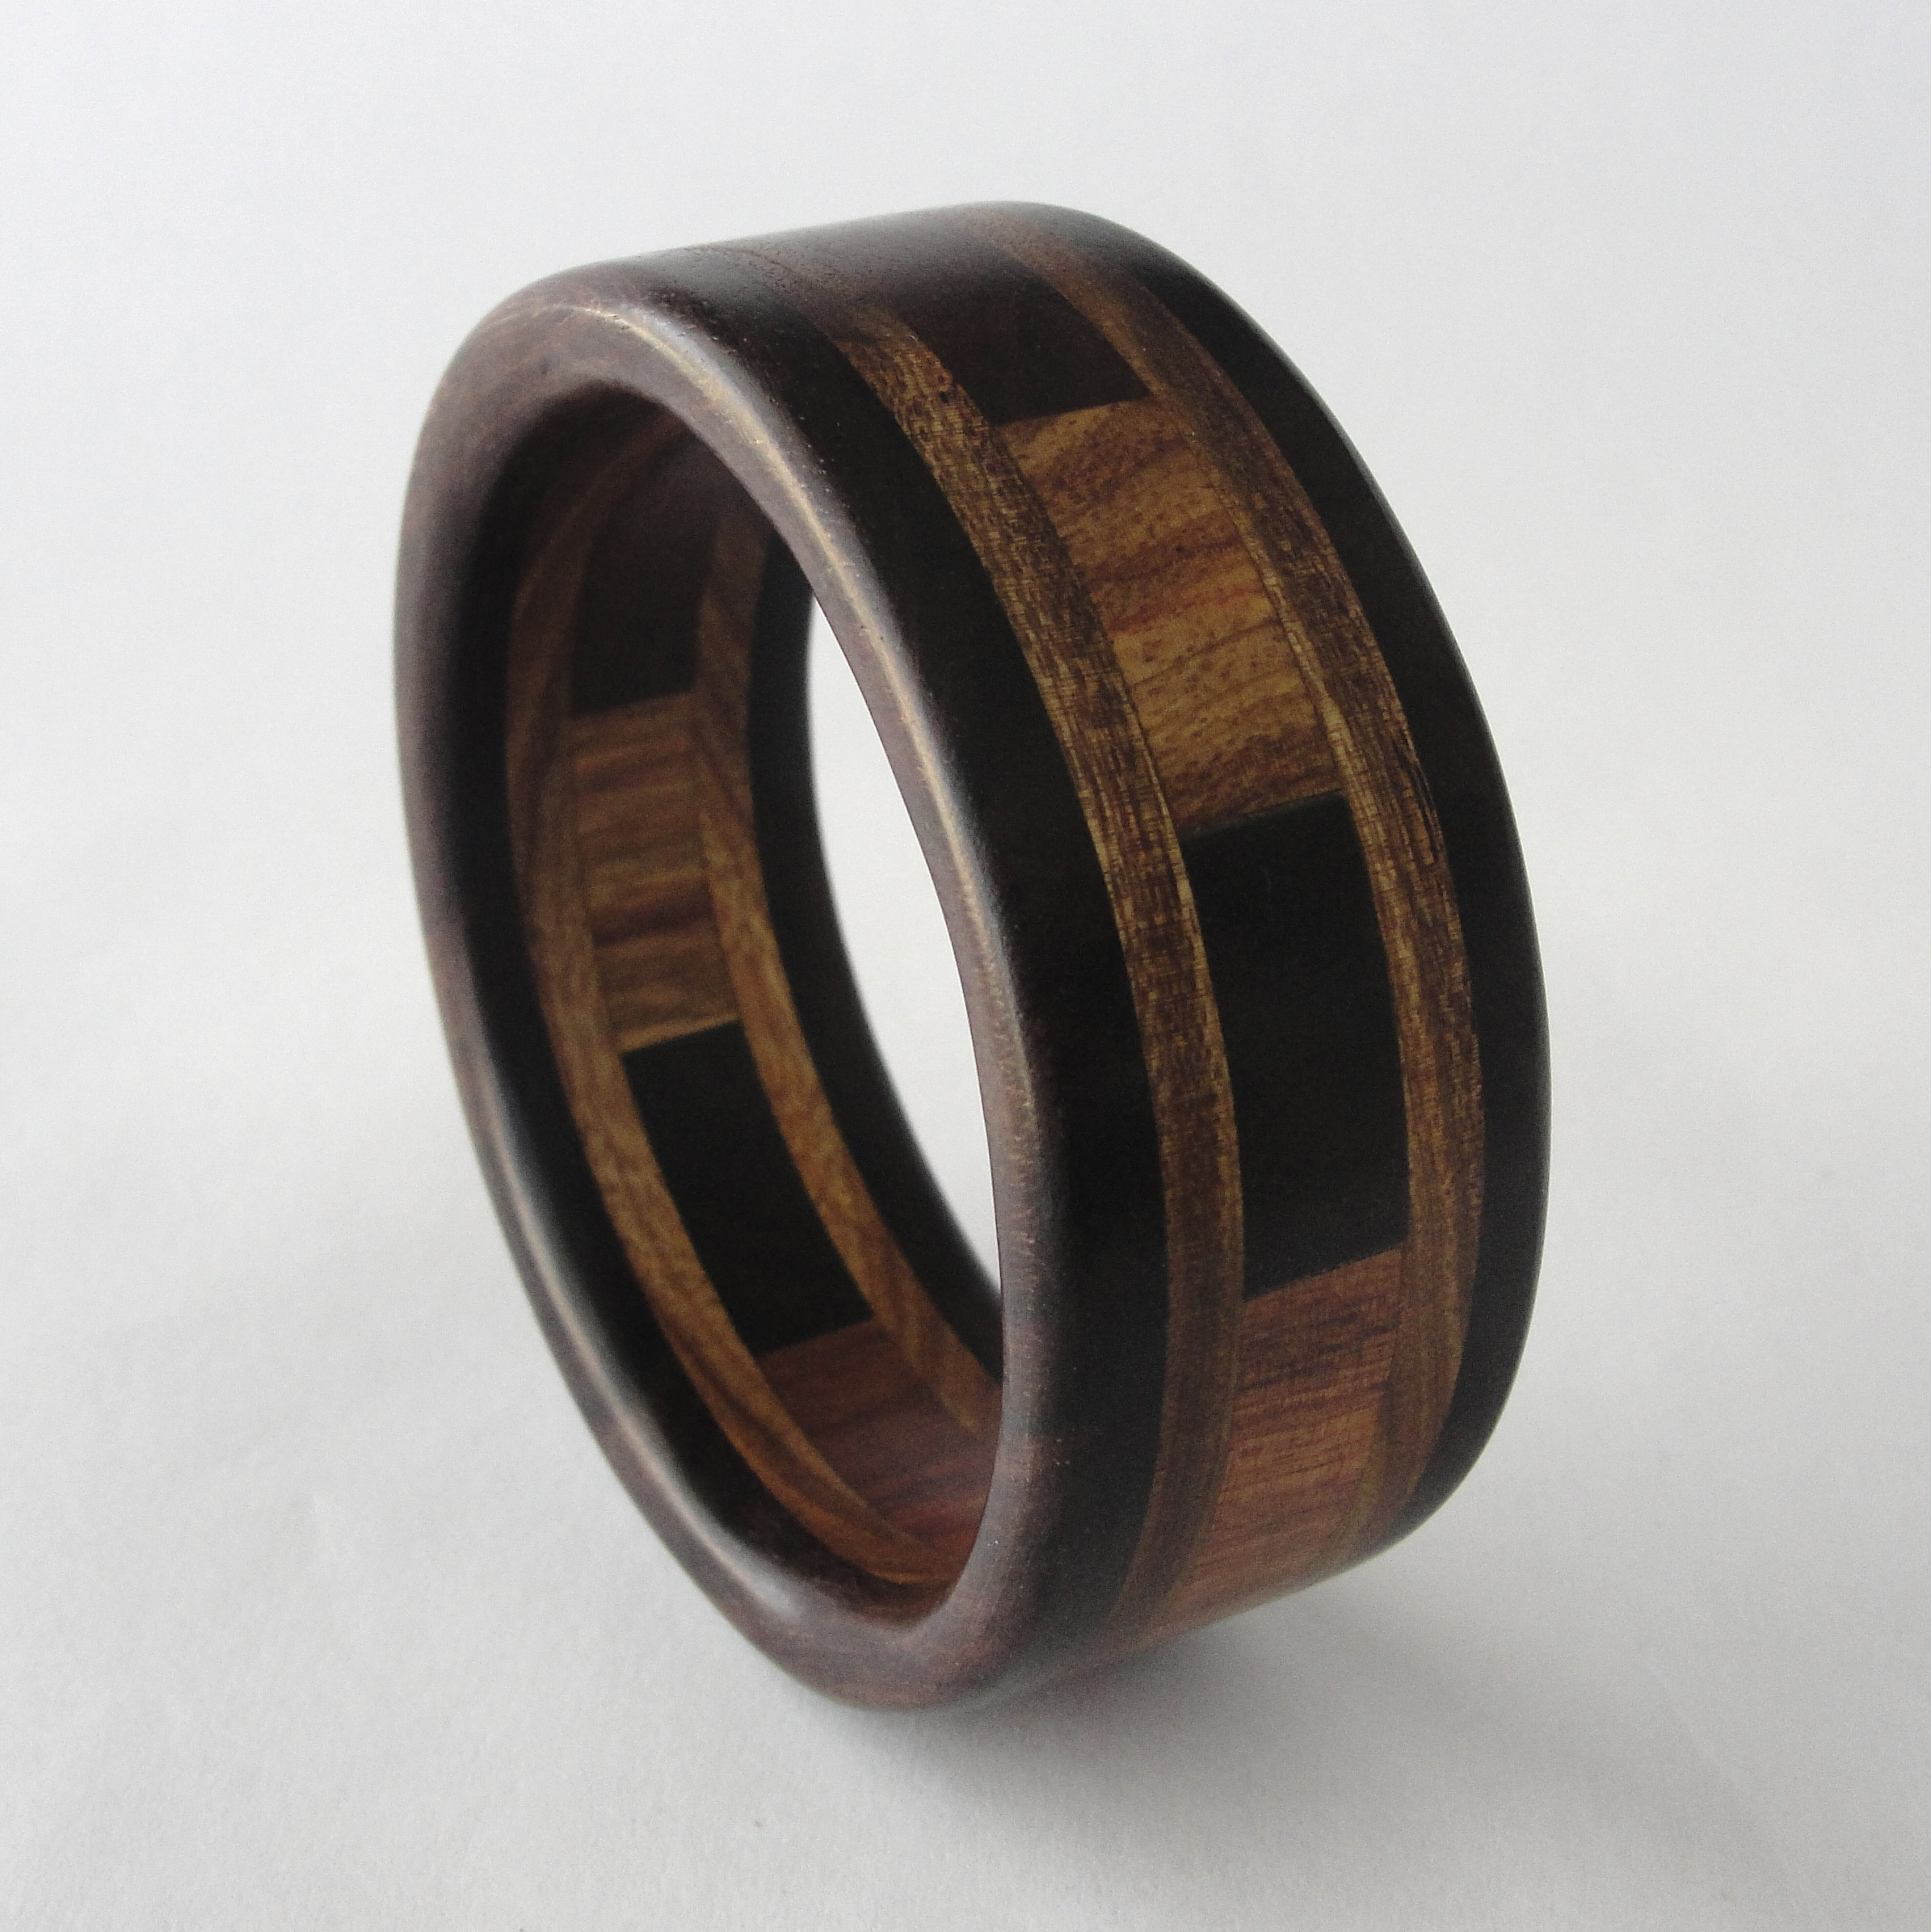 Sample Bracelet from our Segmented / Layered Collection